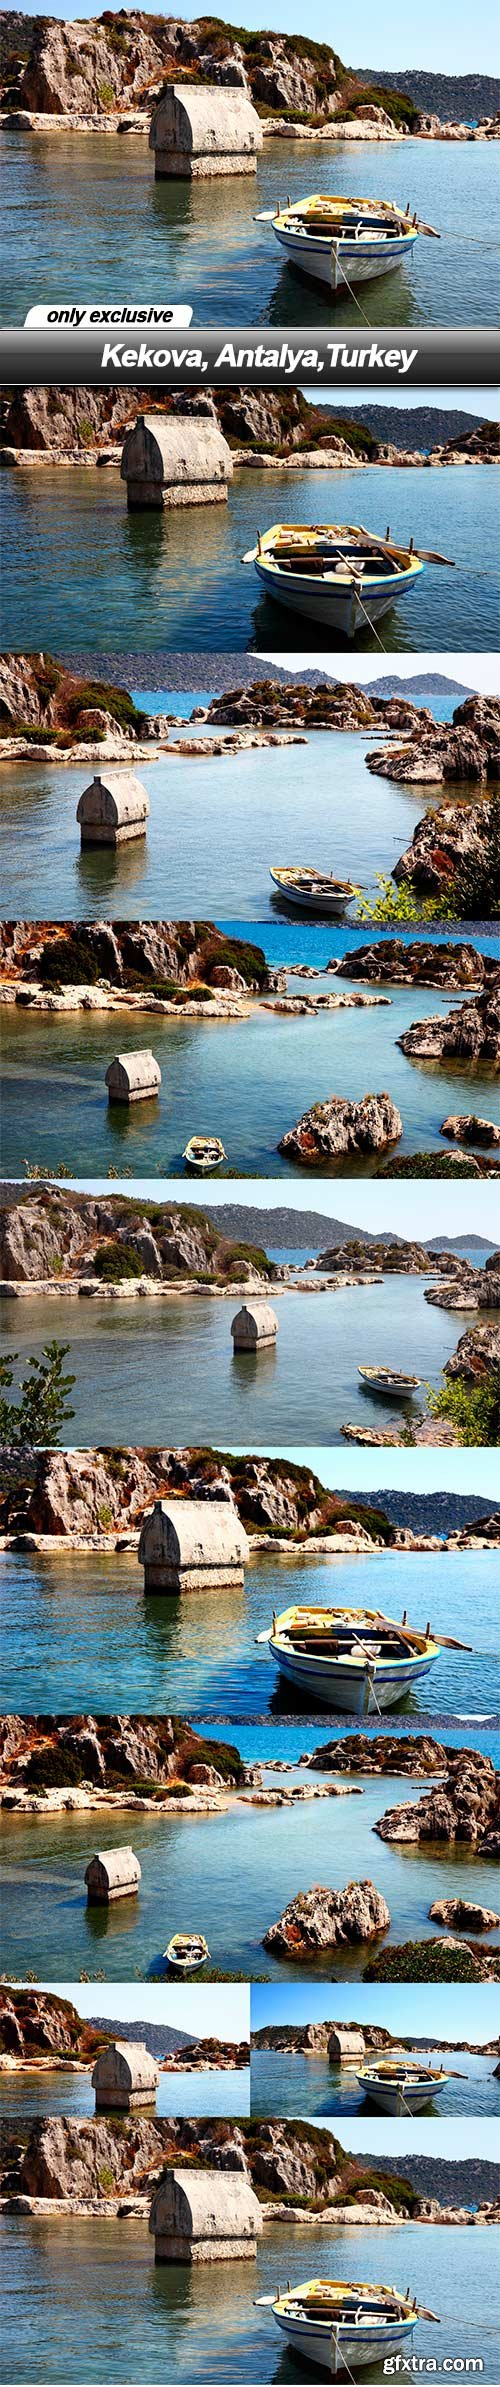 Kekova,Antalya,Turkey - 9 UHQ JPEG